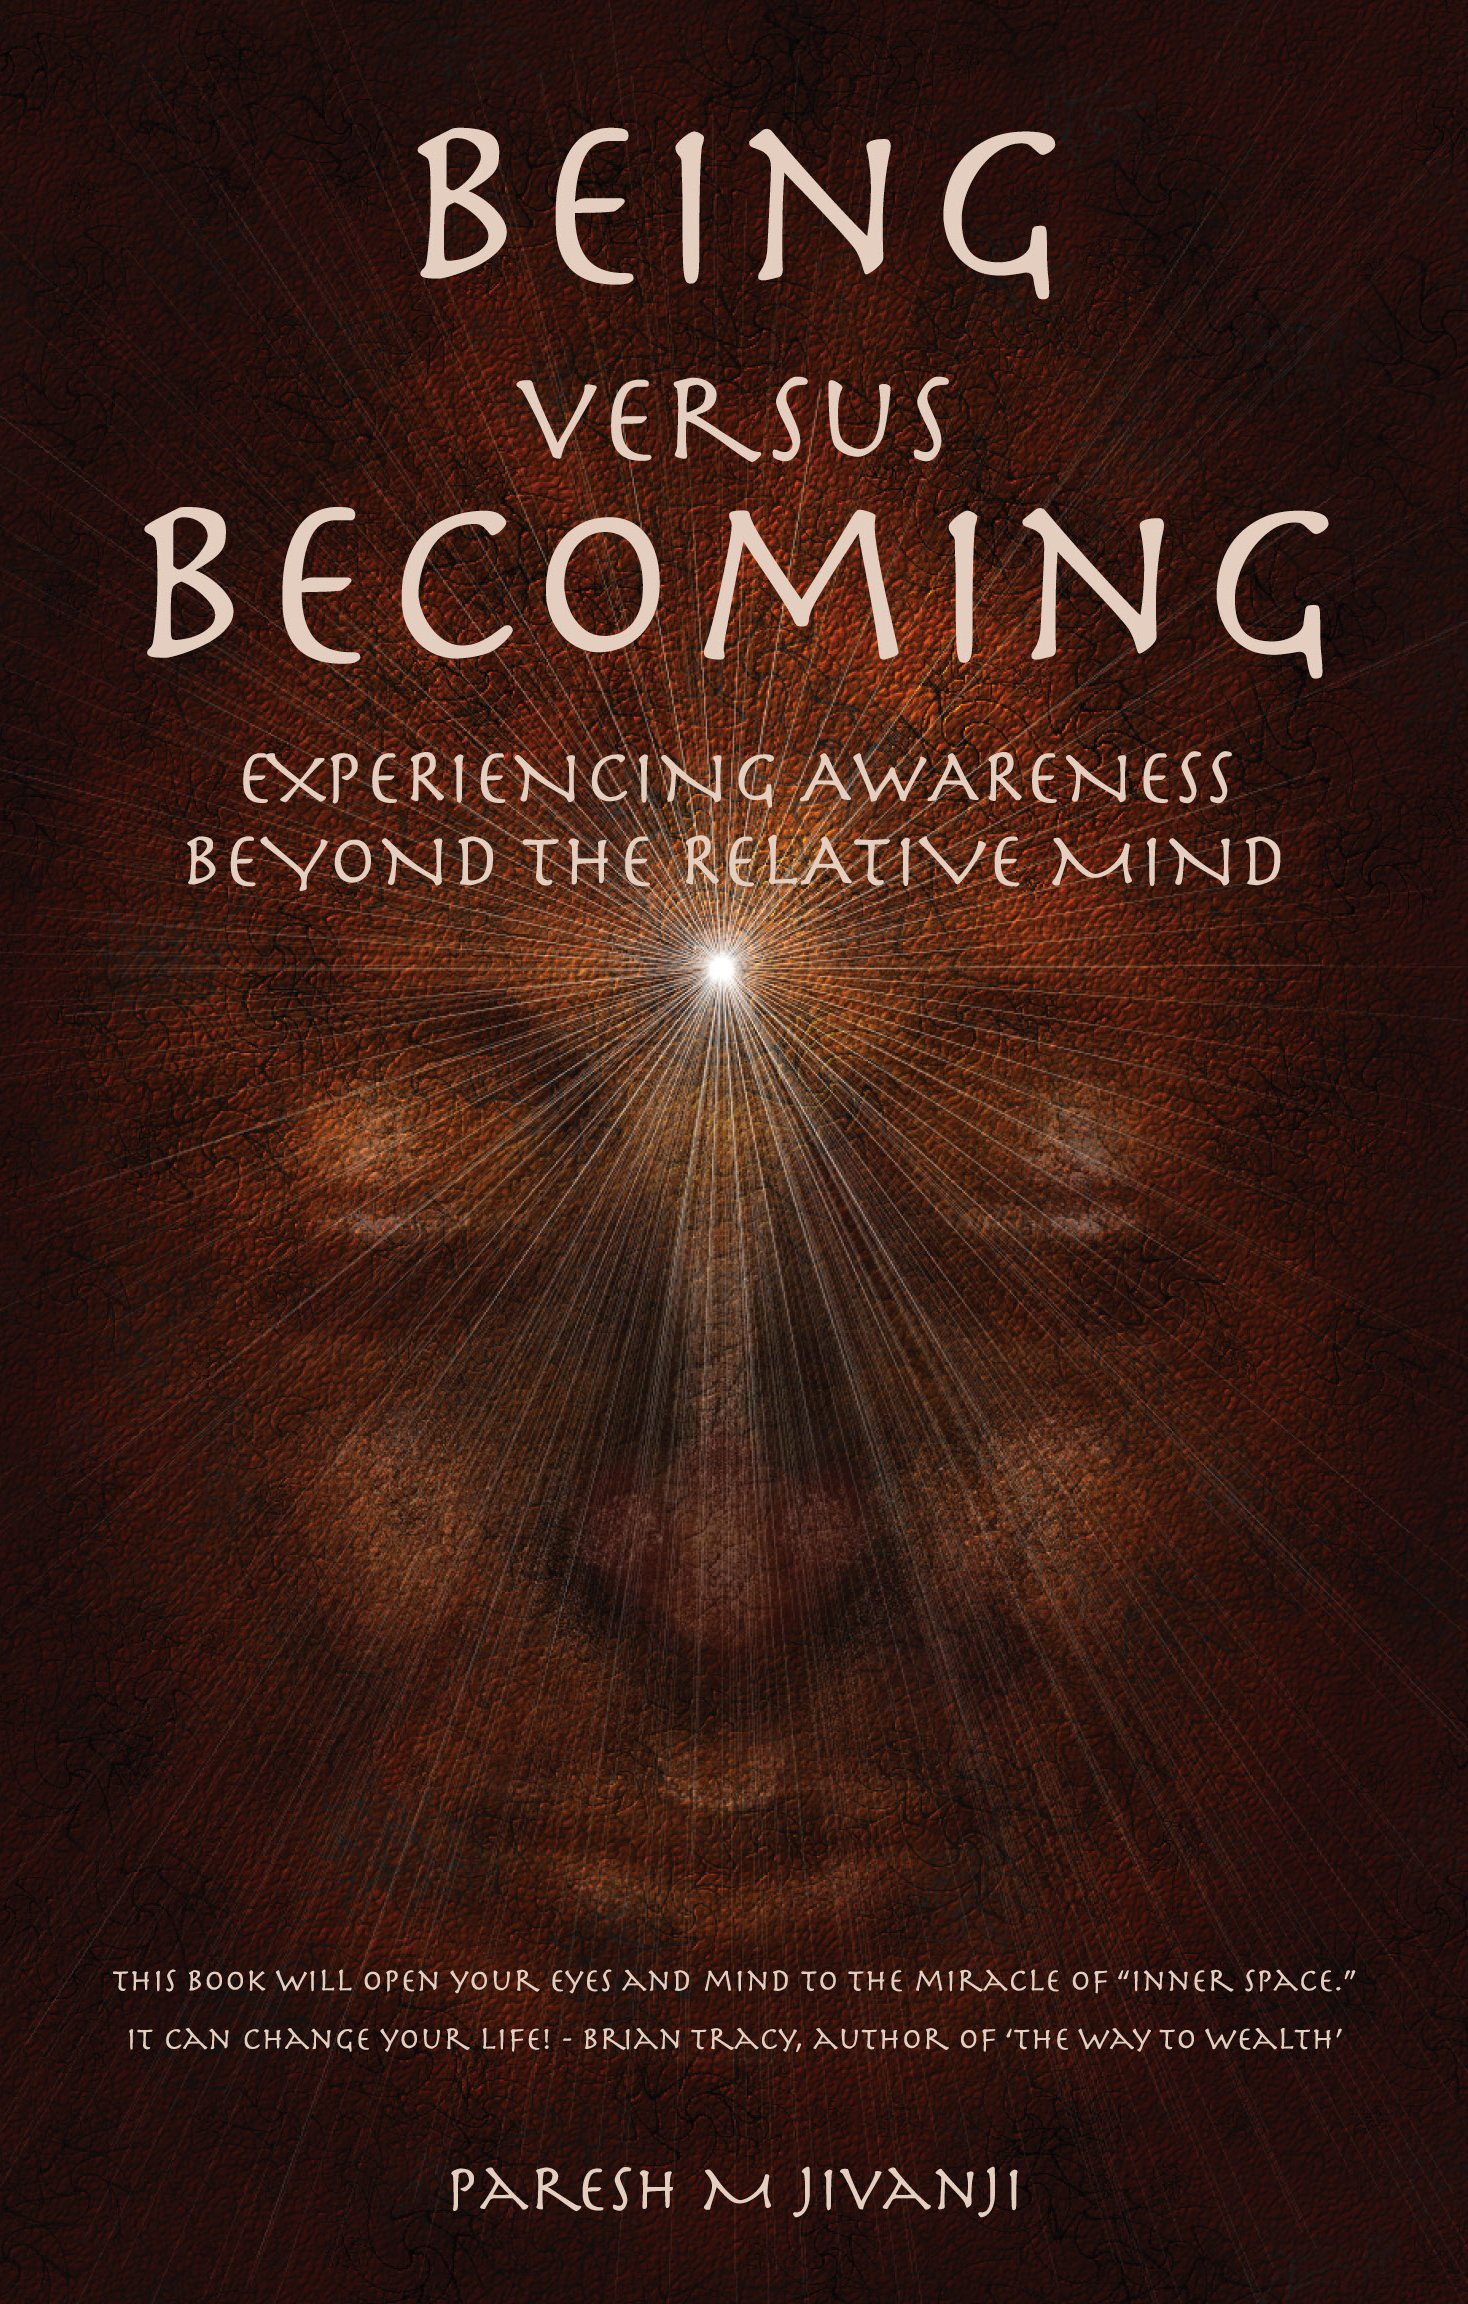 Download Being versus Becoming: Experiencing Awareness Beyond the Relative Mind PDF